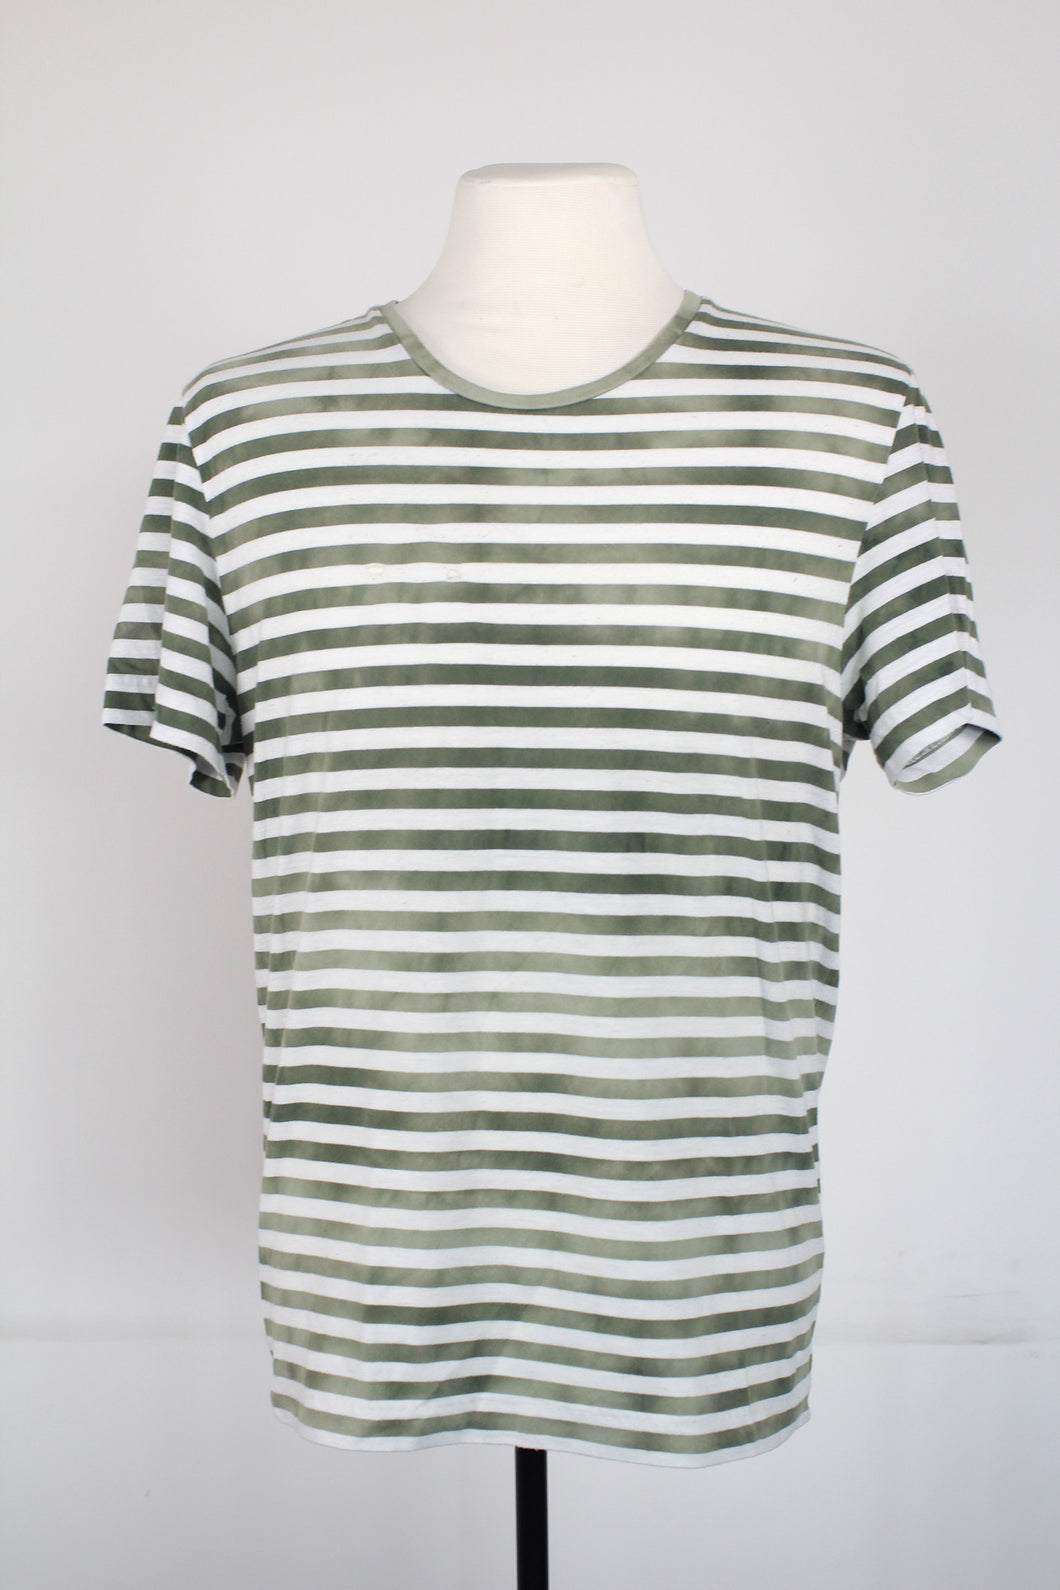 Acne Army Green Distressed Striped Tee